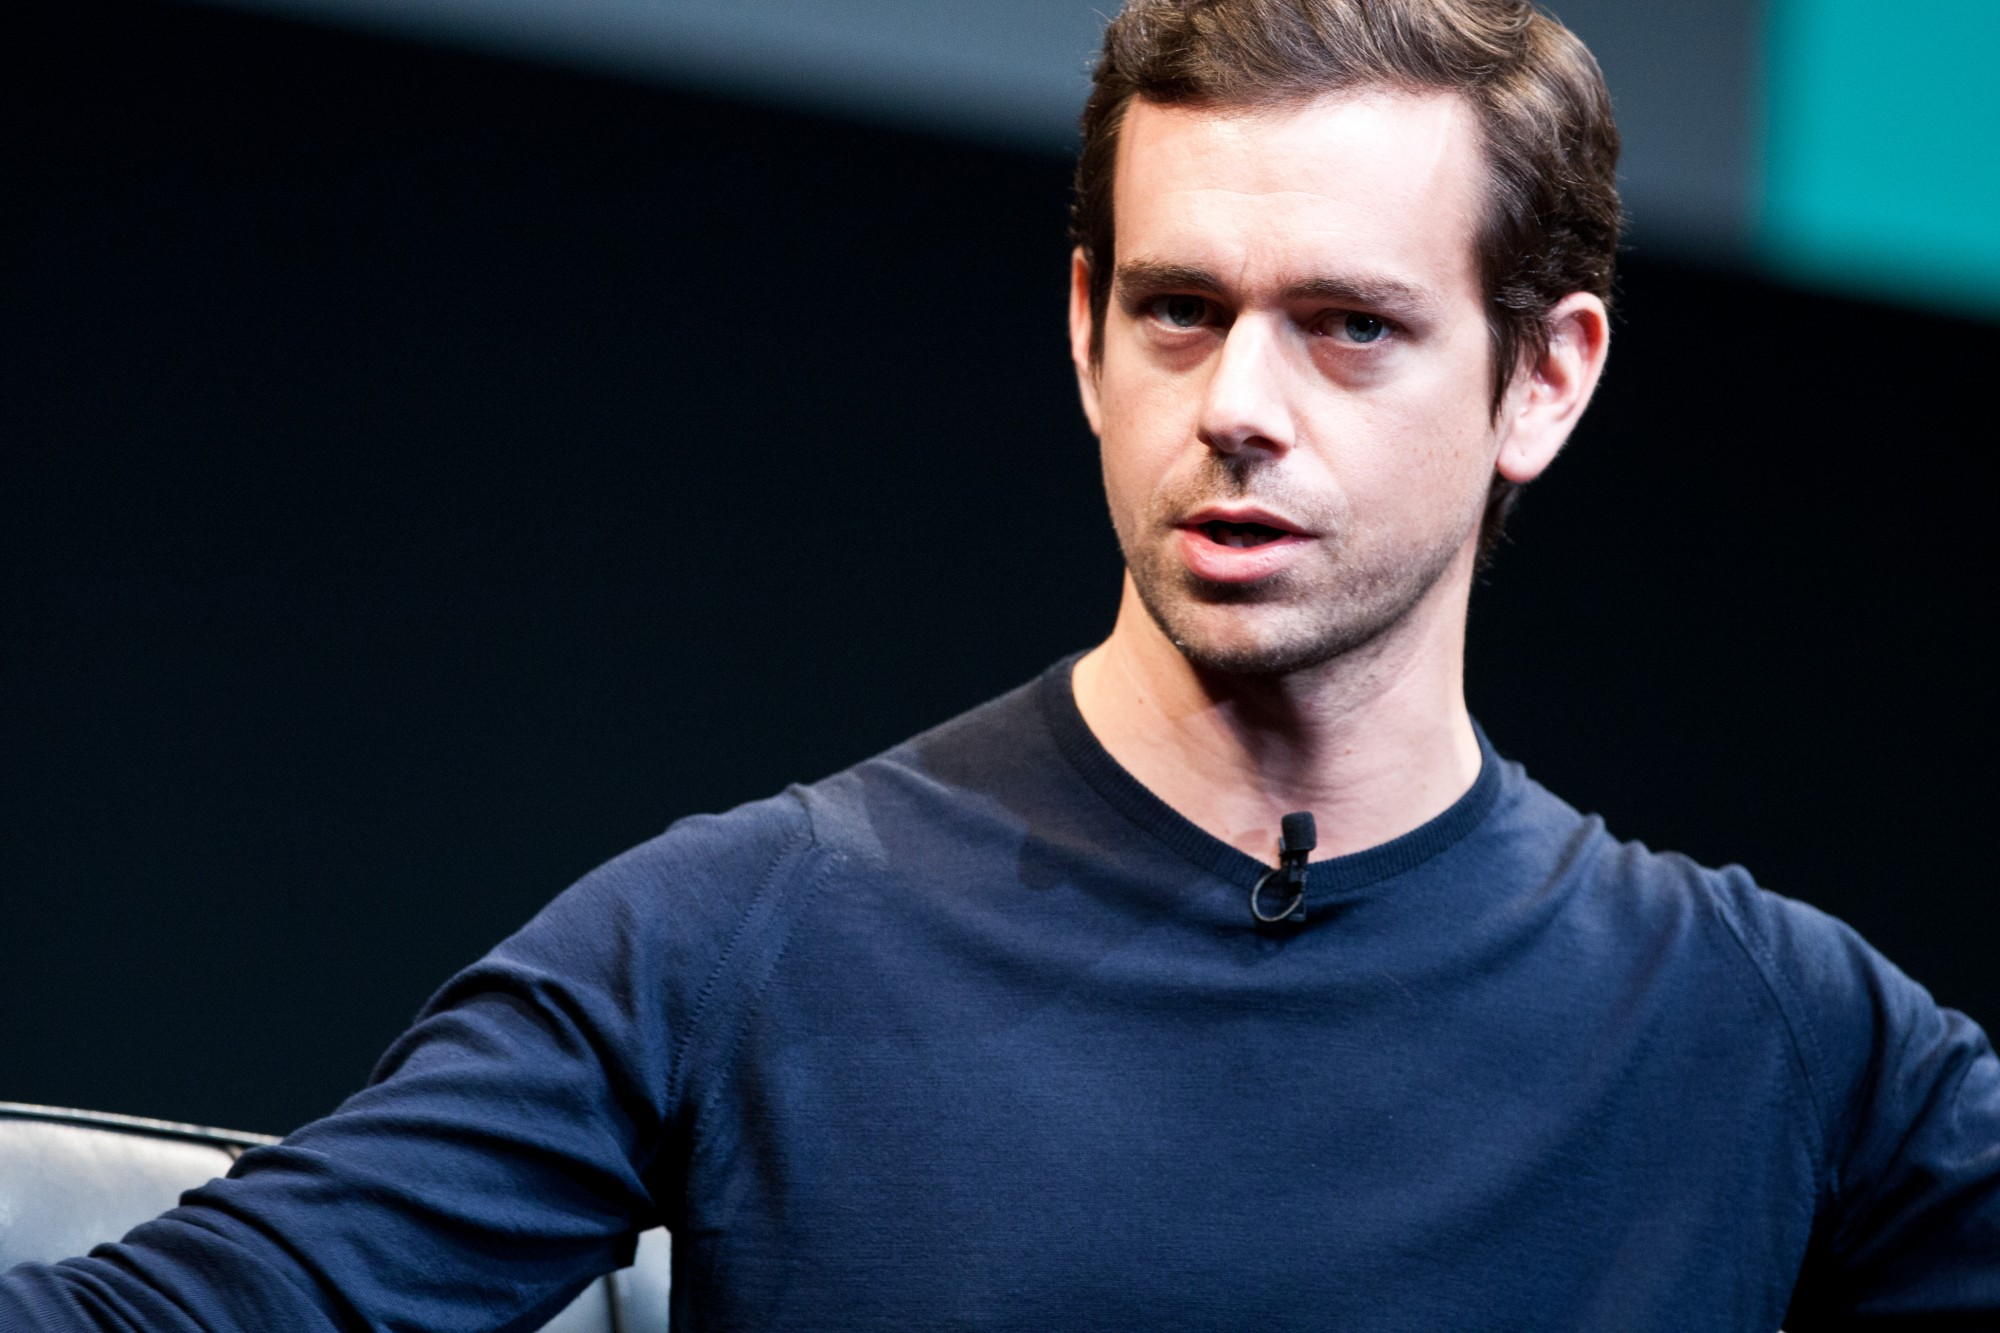 Jack Dorsey on stage at Gigaom Roadmap 2013 (photo courtesy of Gigaom/Pinar Ozger)